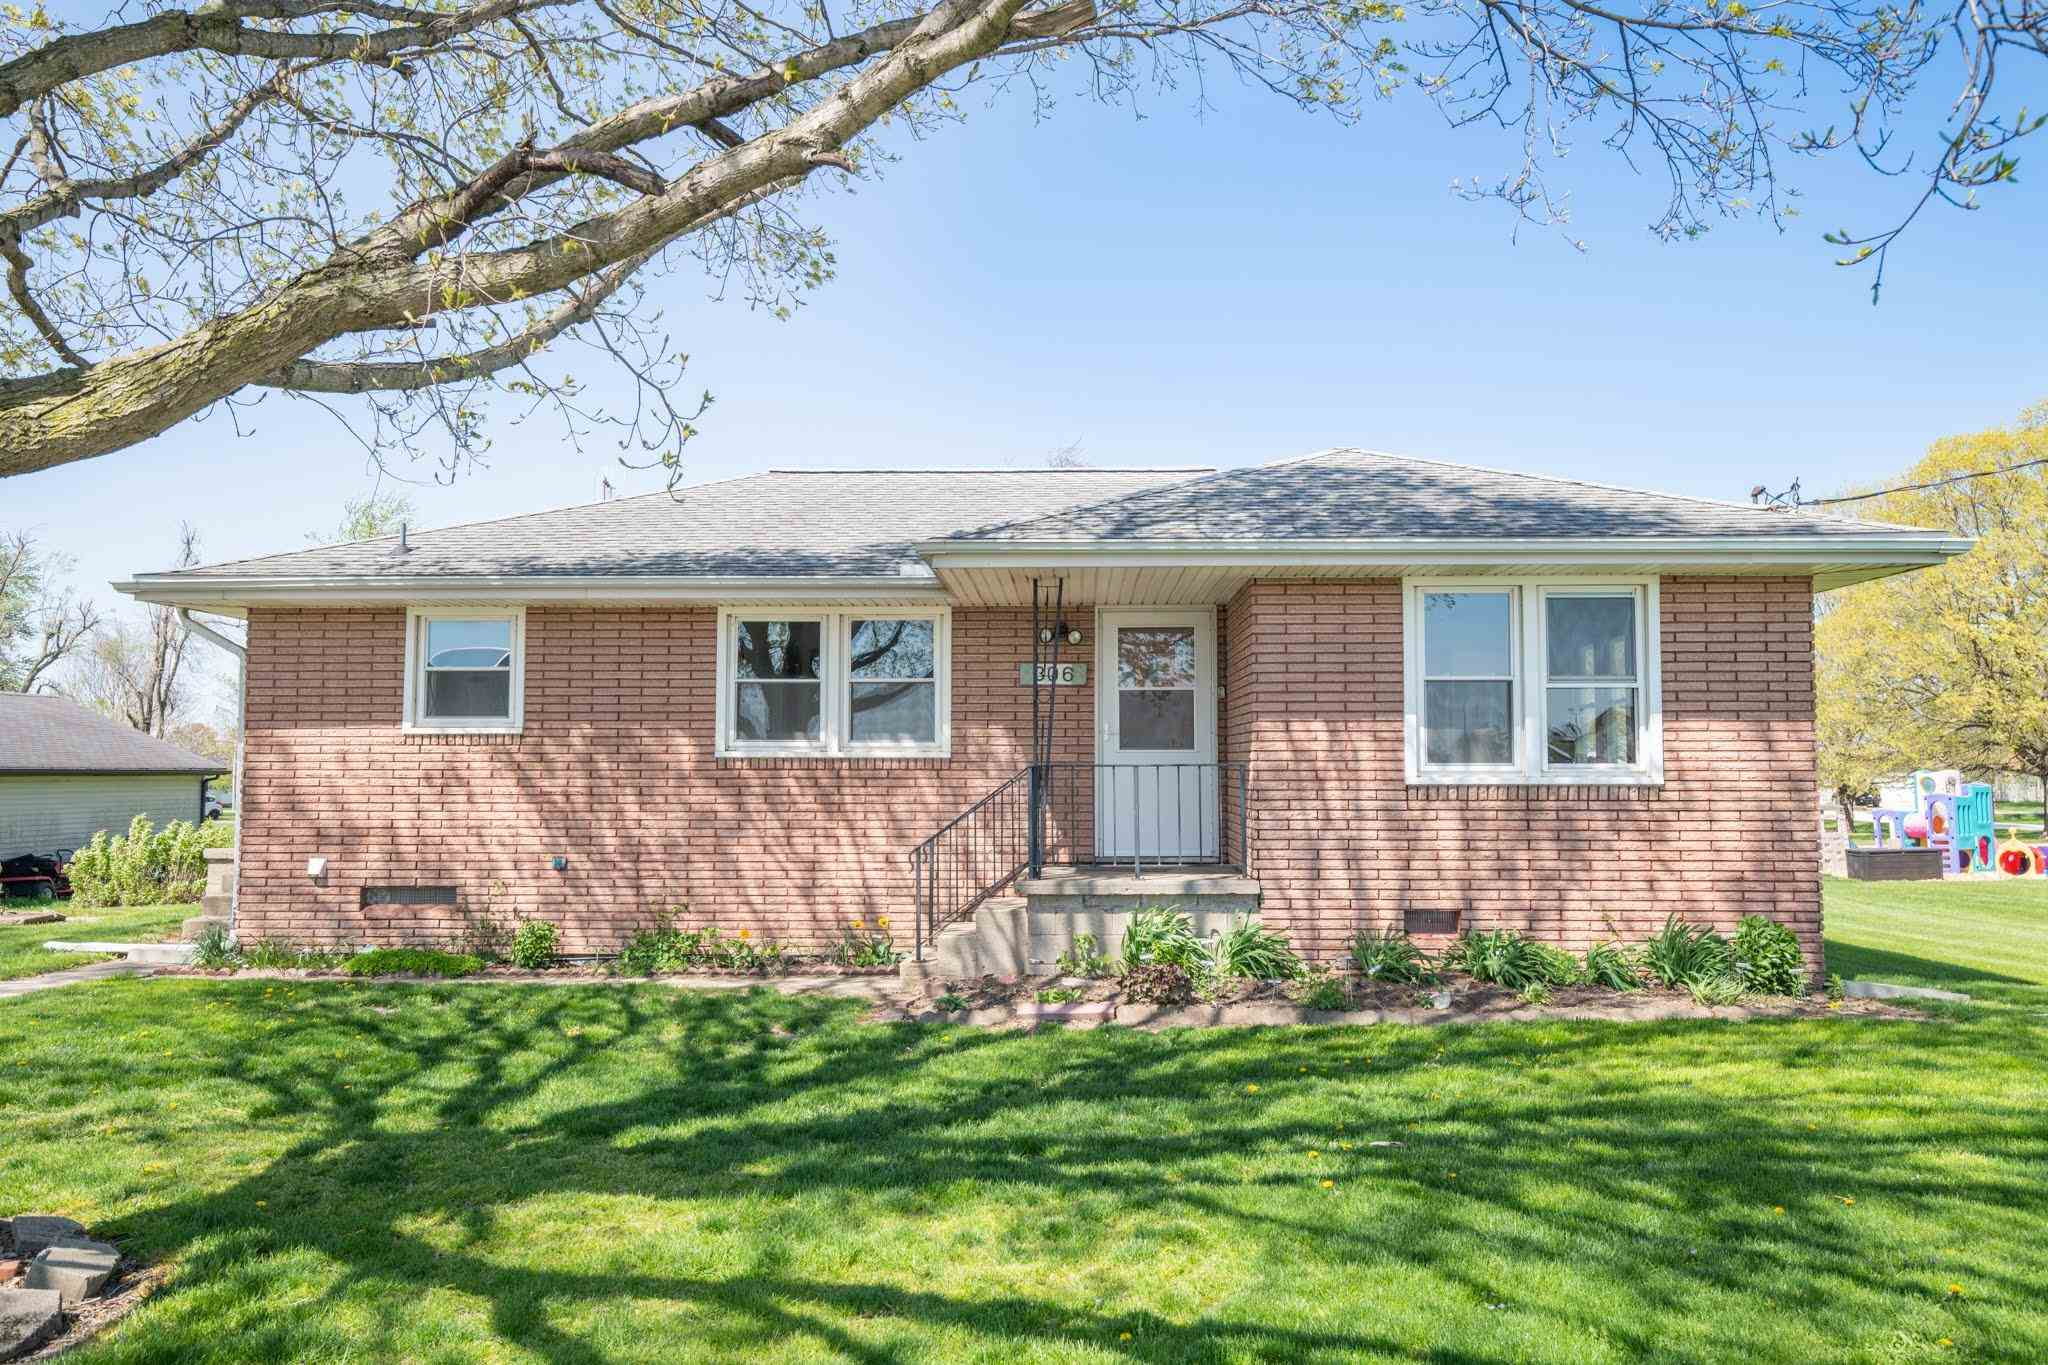 306 S MAIN Property Photo - Deer Creek, IL real estate listing